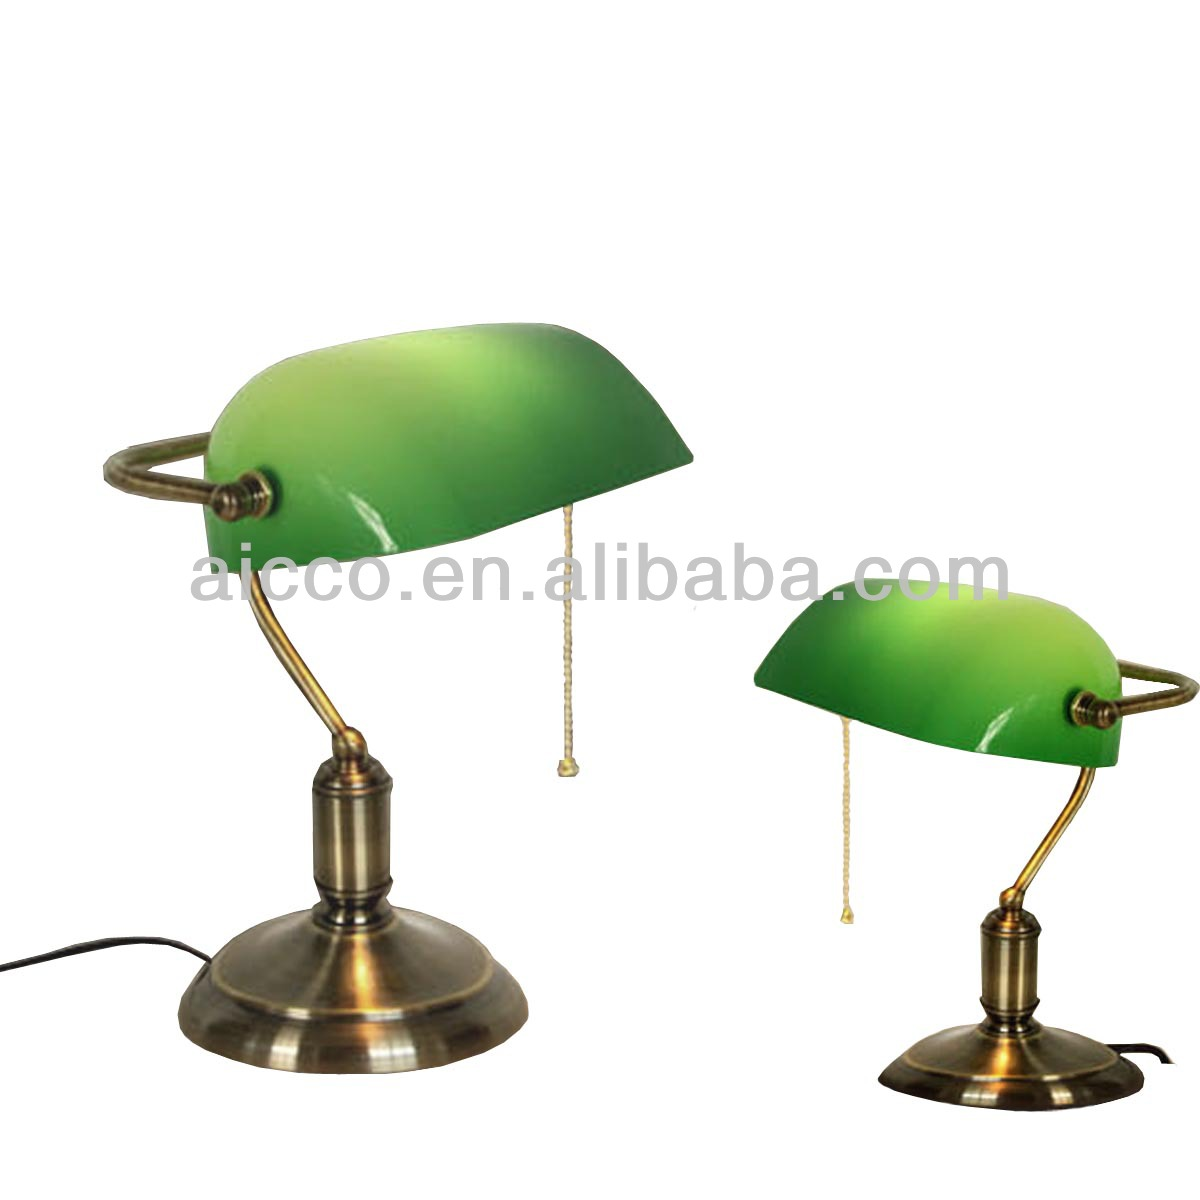 European Antique Bank Table Lamp Green Glass Brass Metal Bank ...